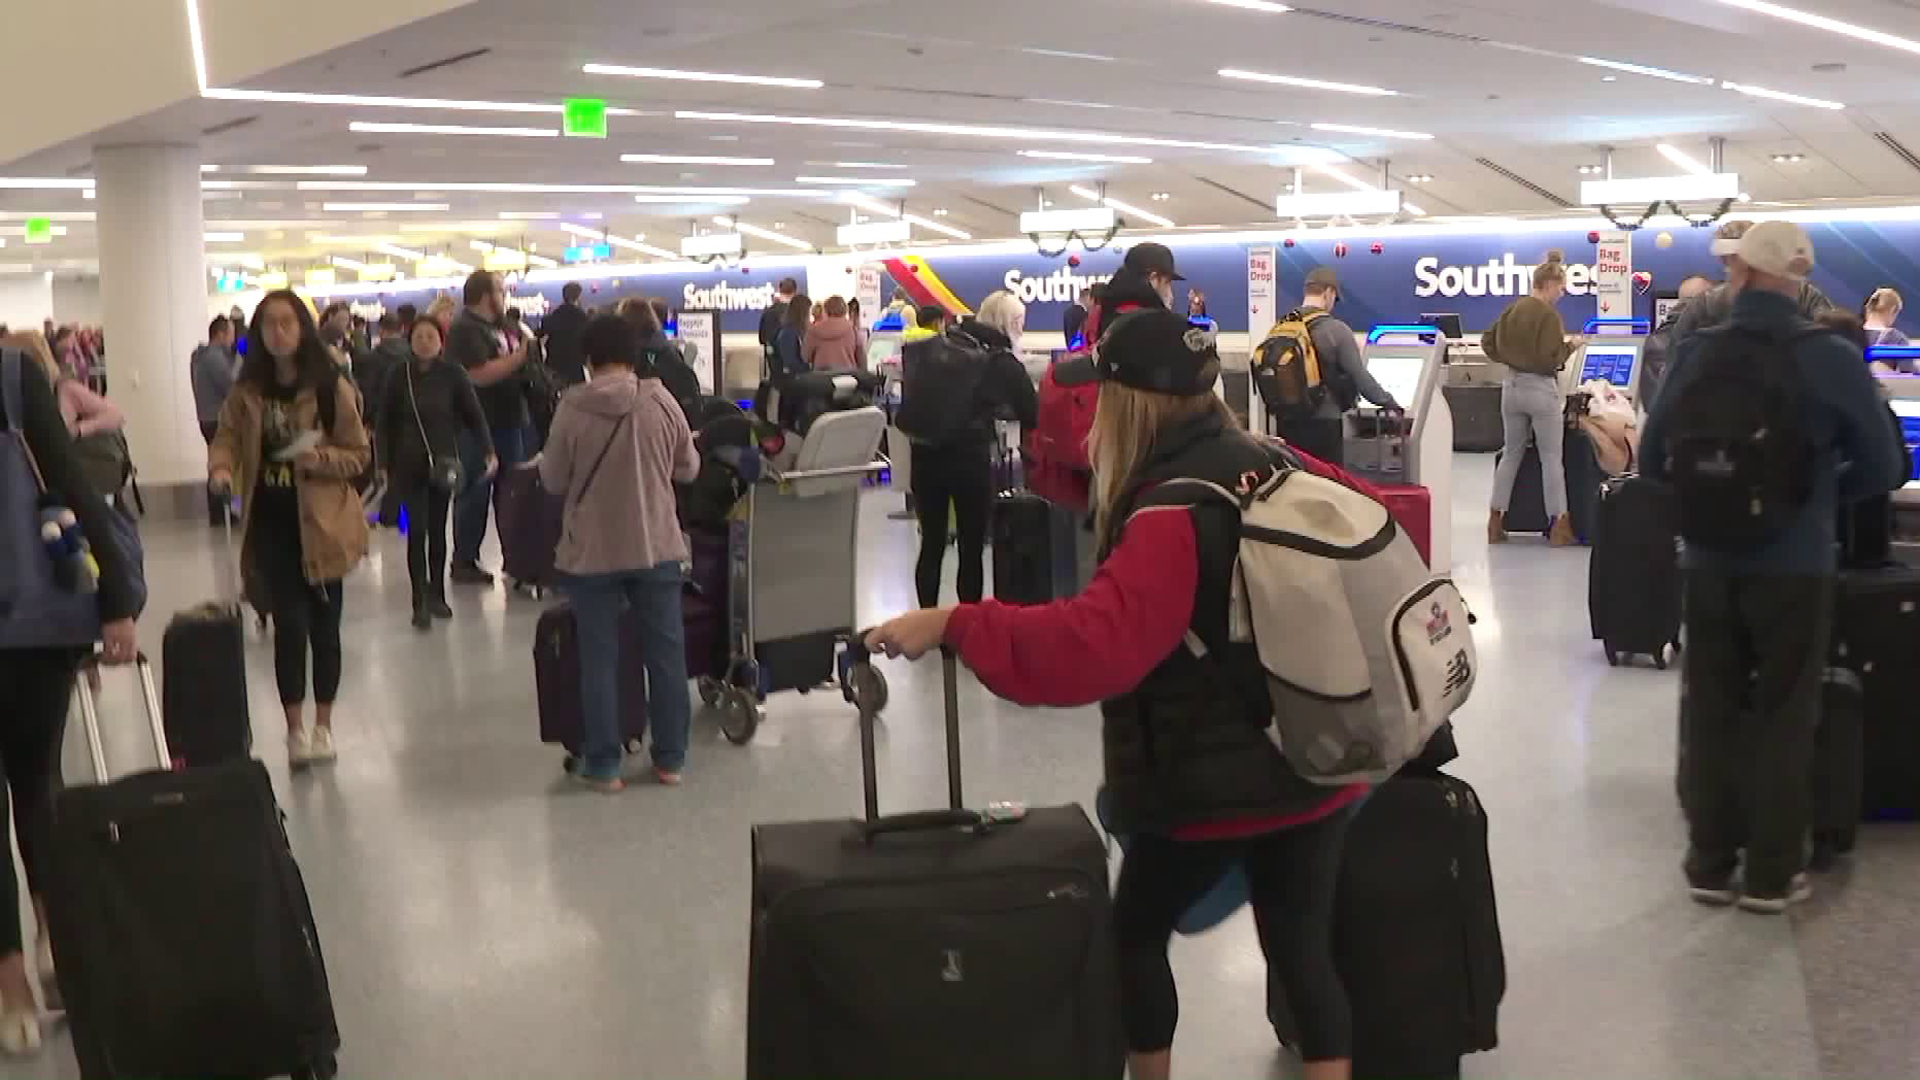 Children and surviving spouses of fallen U.S. military heroes gather at the Los Angeles International Airport before heading to Disney World on Dec. 8, 2018. (Credit: KTLA)